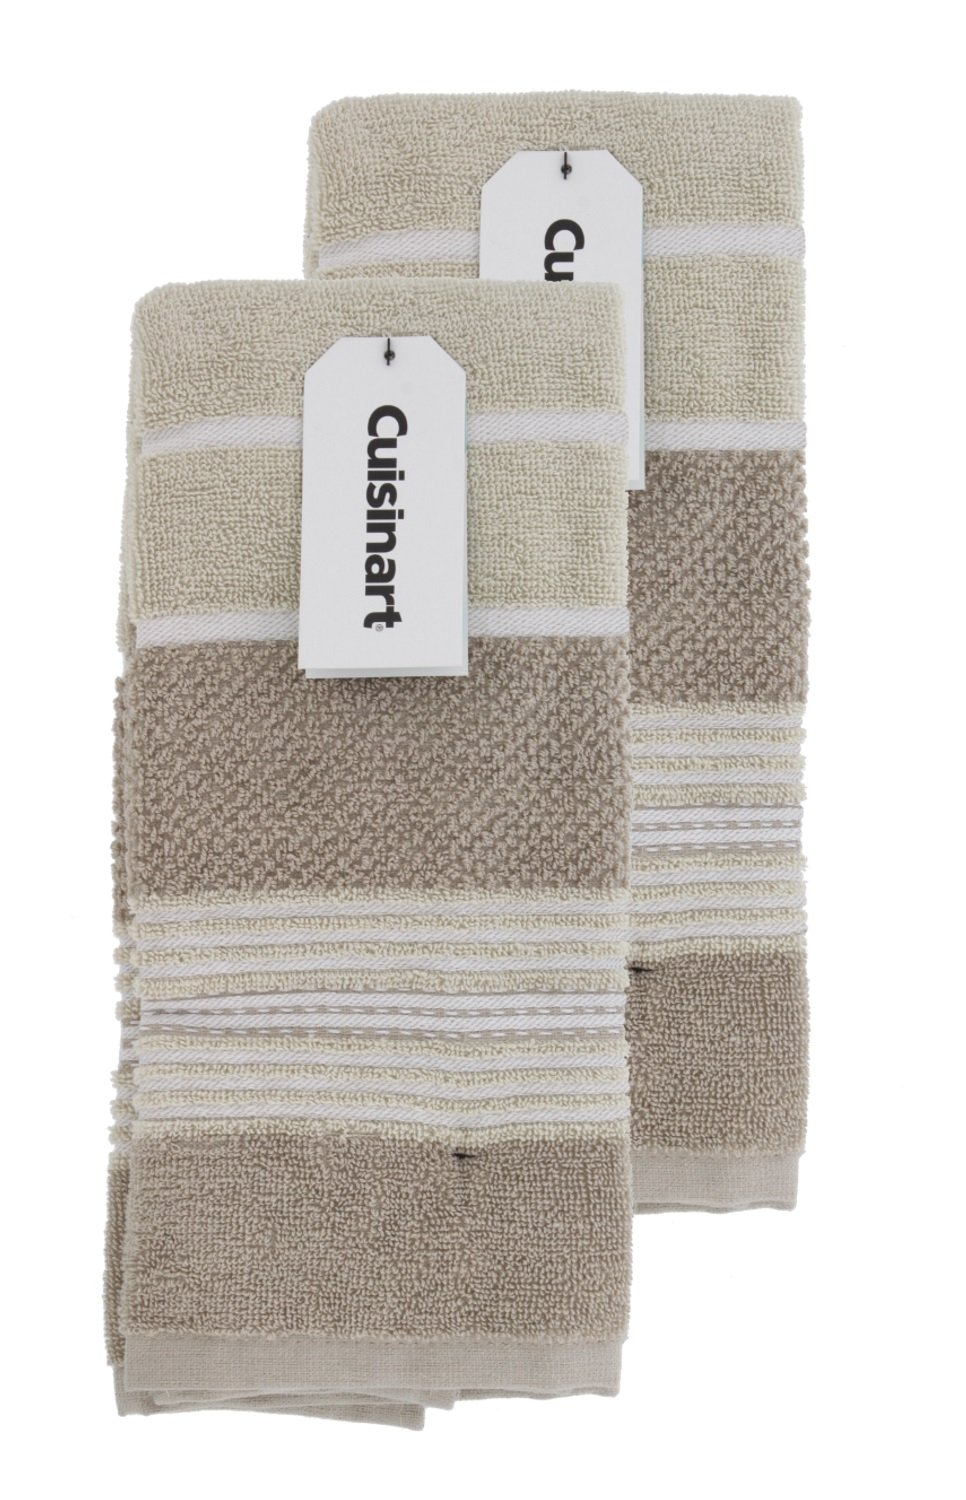 Cuisinart 100% Cotton Terry Super Absorbent Kitchen Towels Perfect for Drying Dishes &... by Cuisinart